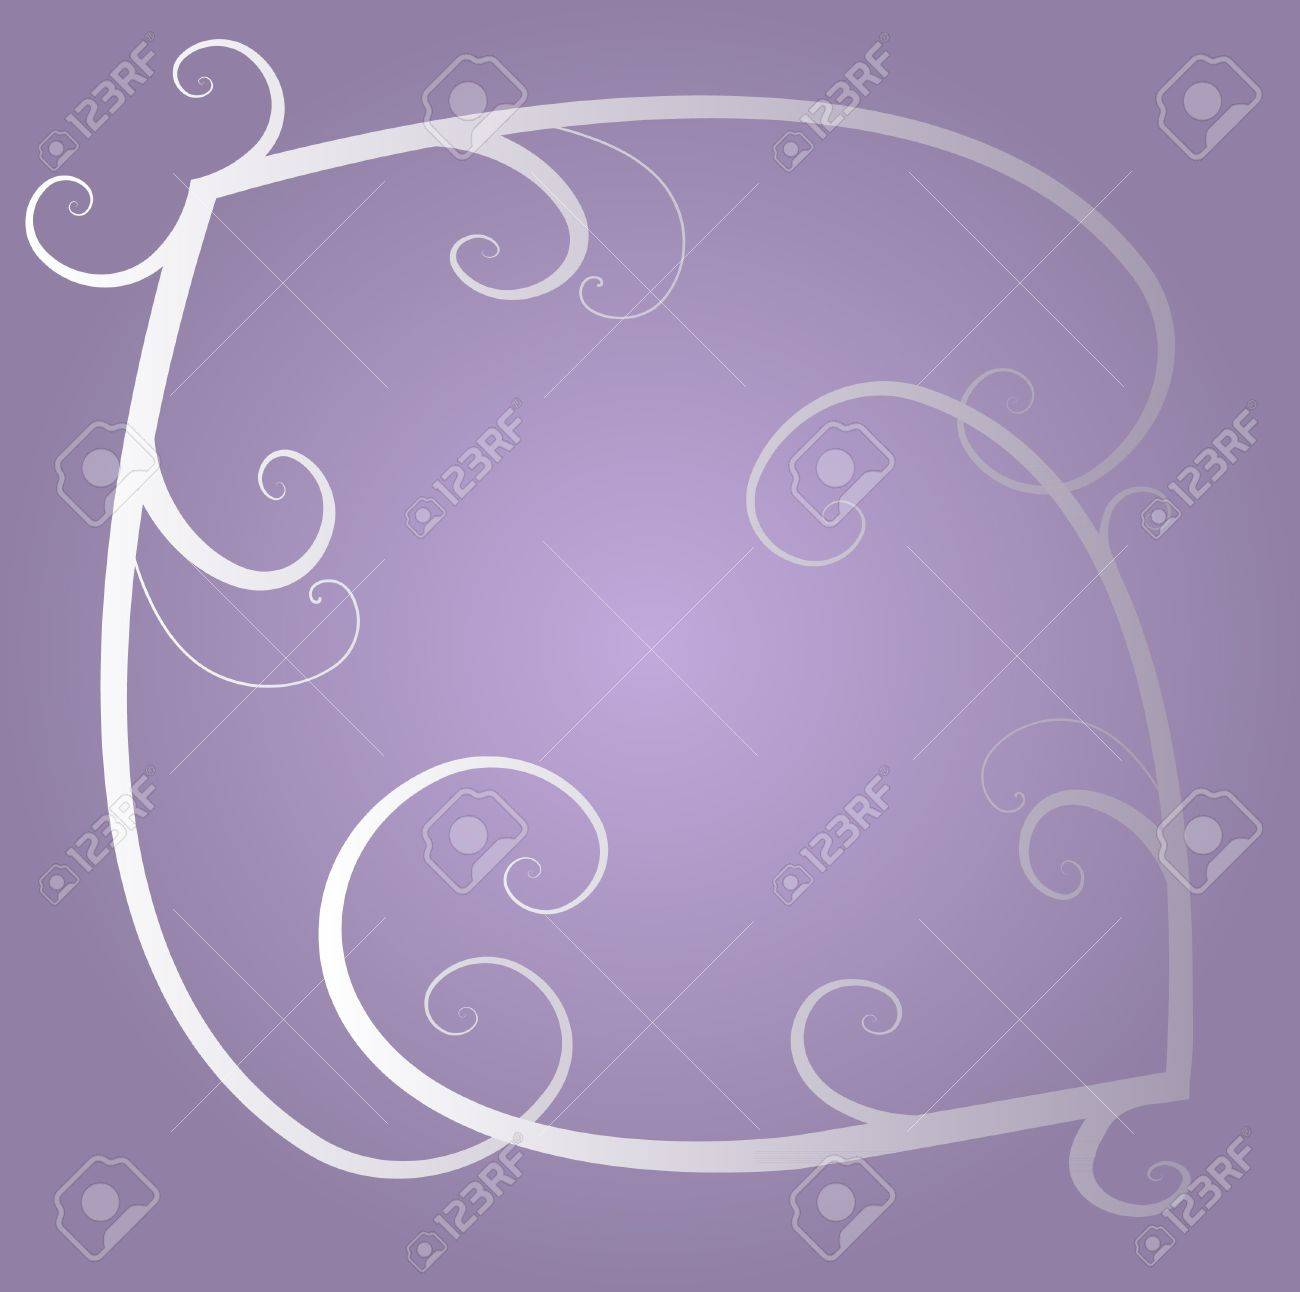 Light purple swirls background purple swirls background - Vector White And Grey Decorative Ornamental Floral Swirls On The Light Violet Background